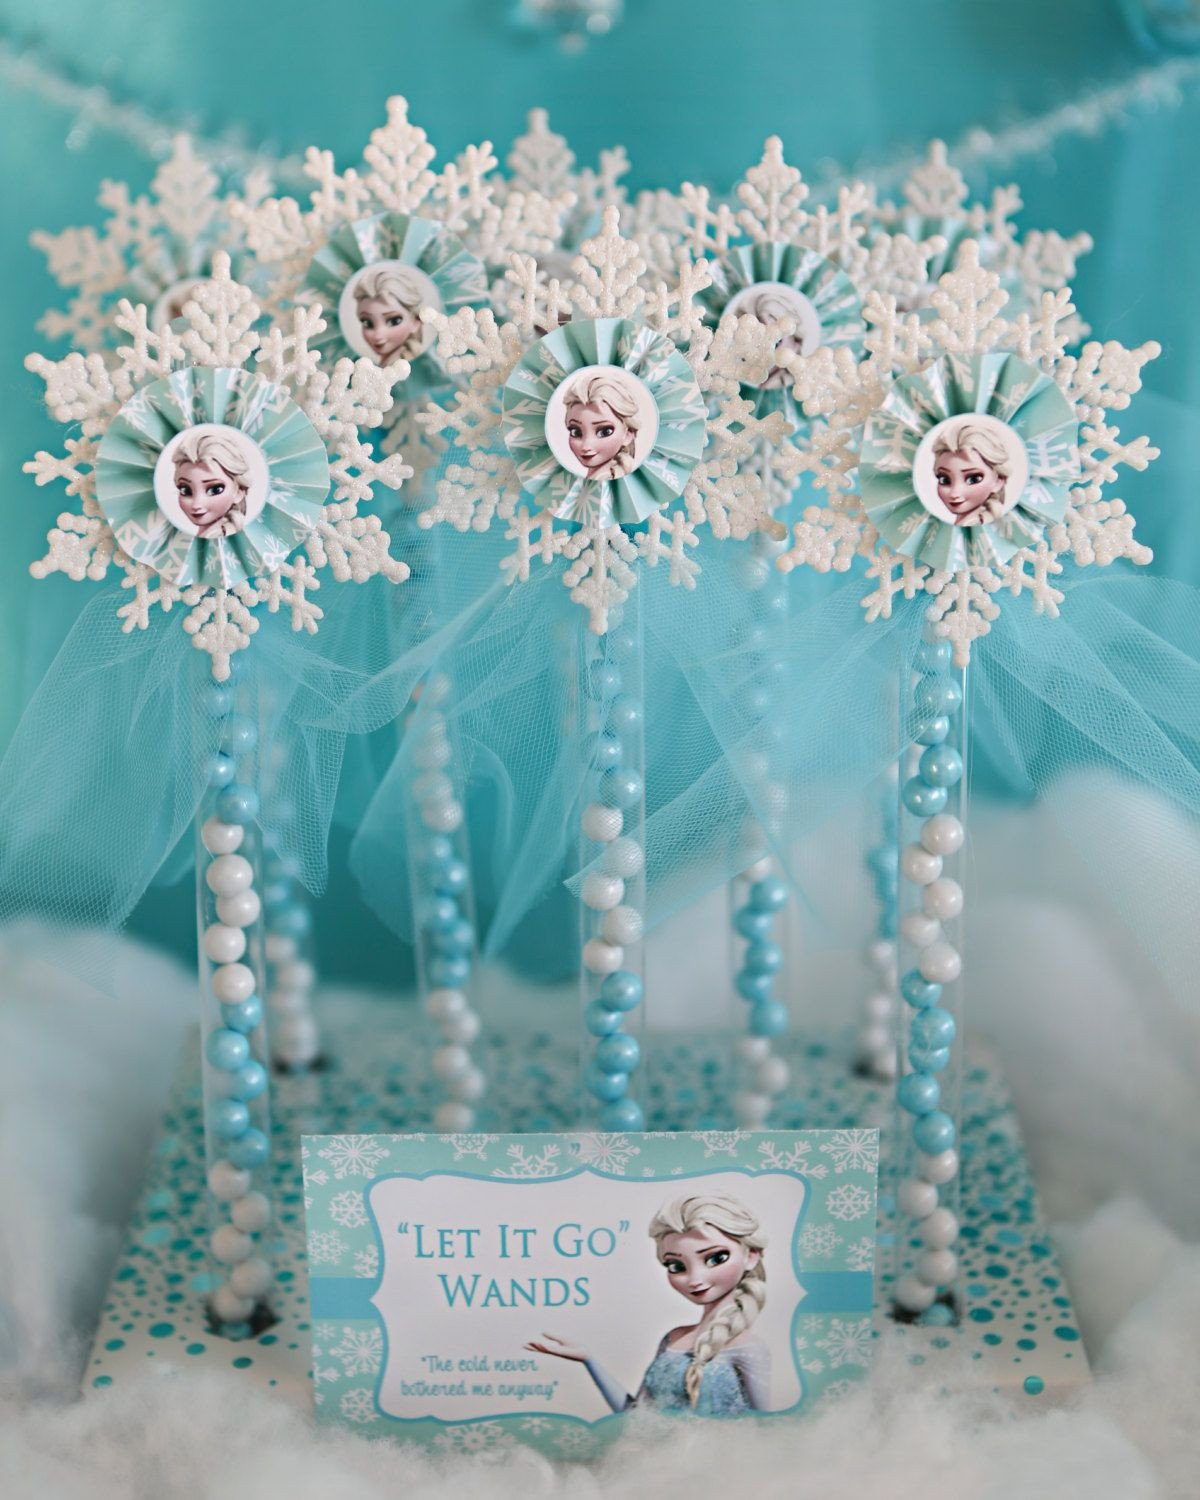 Frozen themed Bedroom Ideas Elegant 12 Elsa Party Favor Candy Wands by Keepsmilingproject On